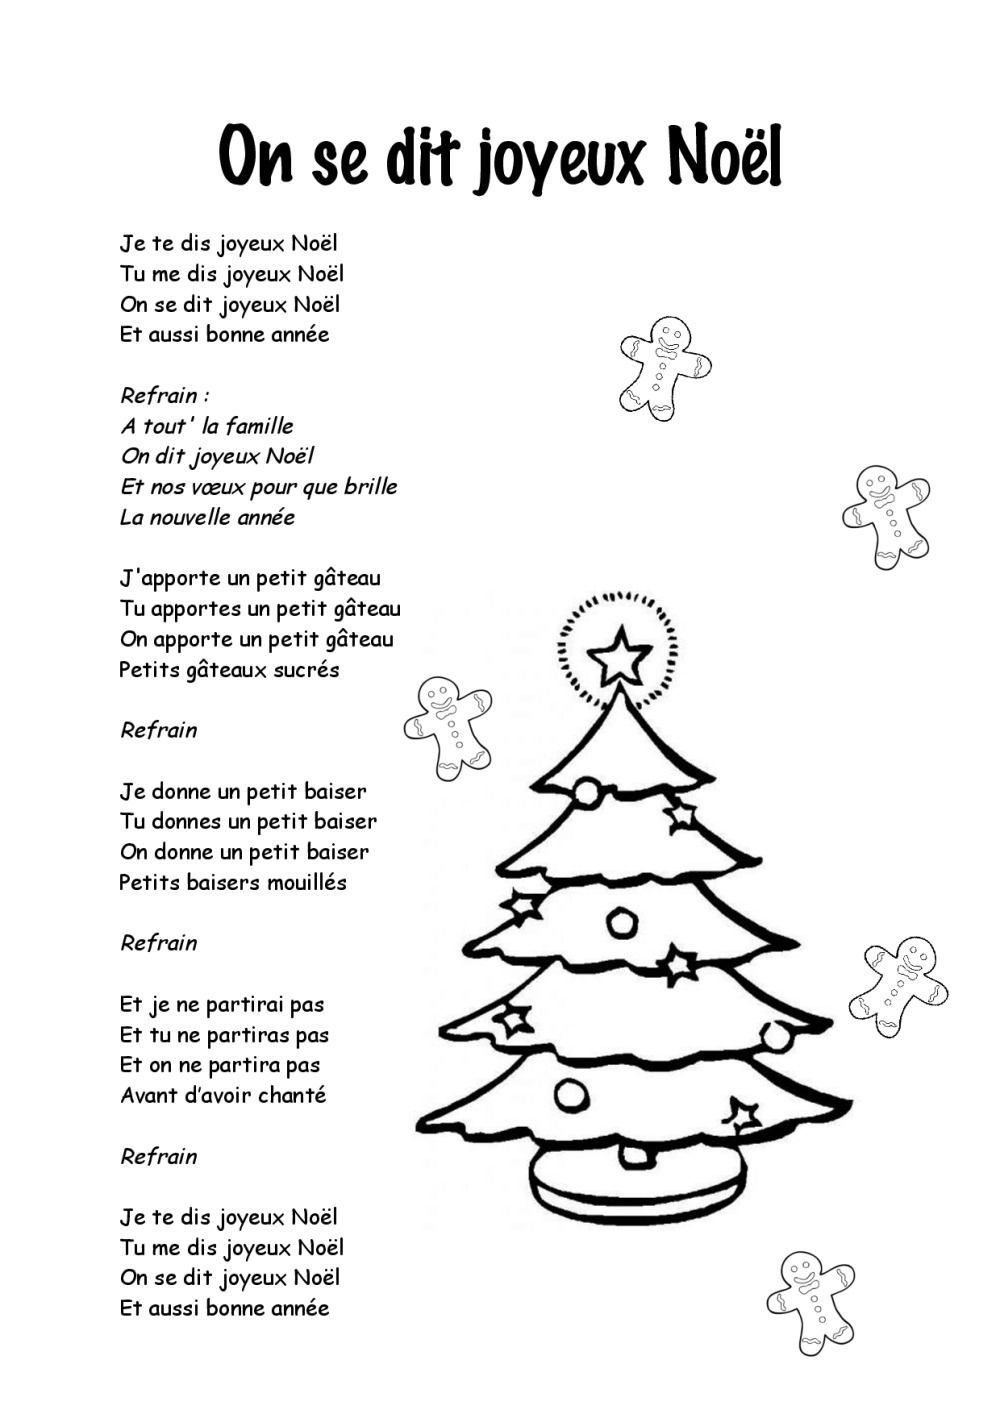 Noel Joyeux Noel Paroles Compagnie Creole.Noel Joyeux Noel Paroles Noel Joyeux Noel Paroles Image